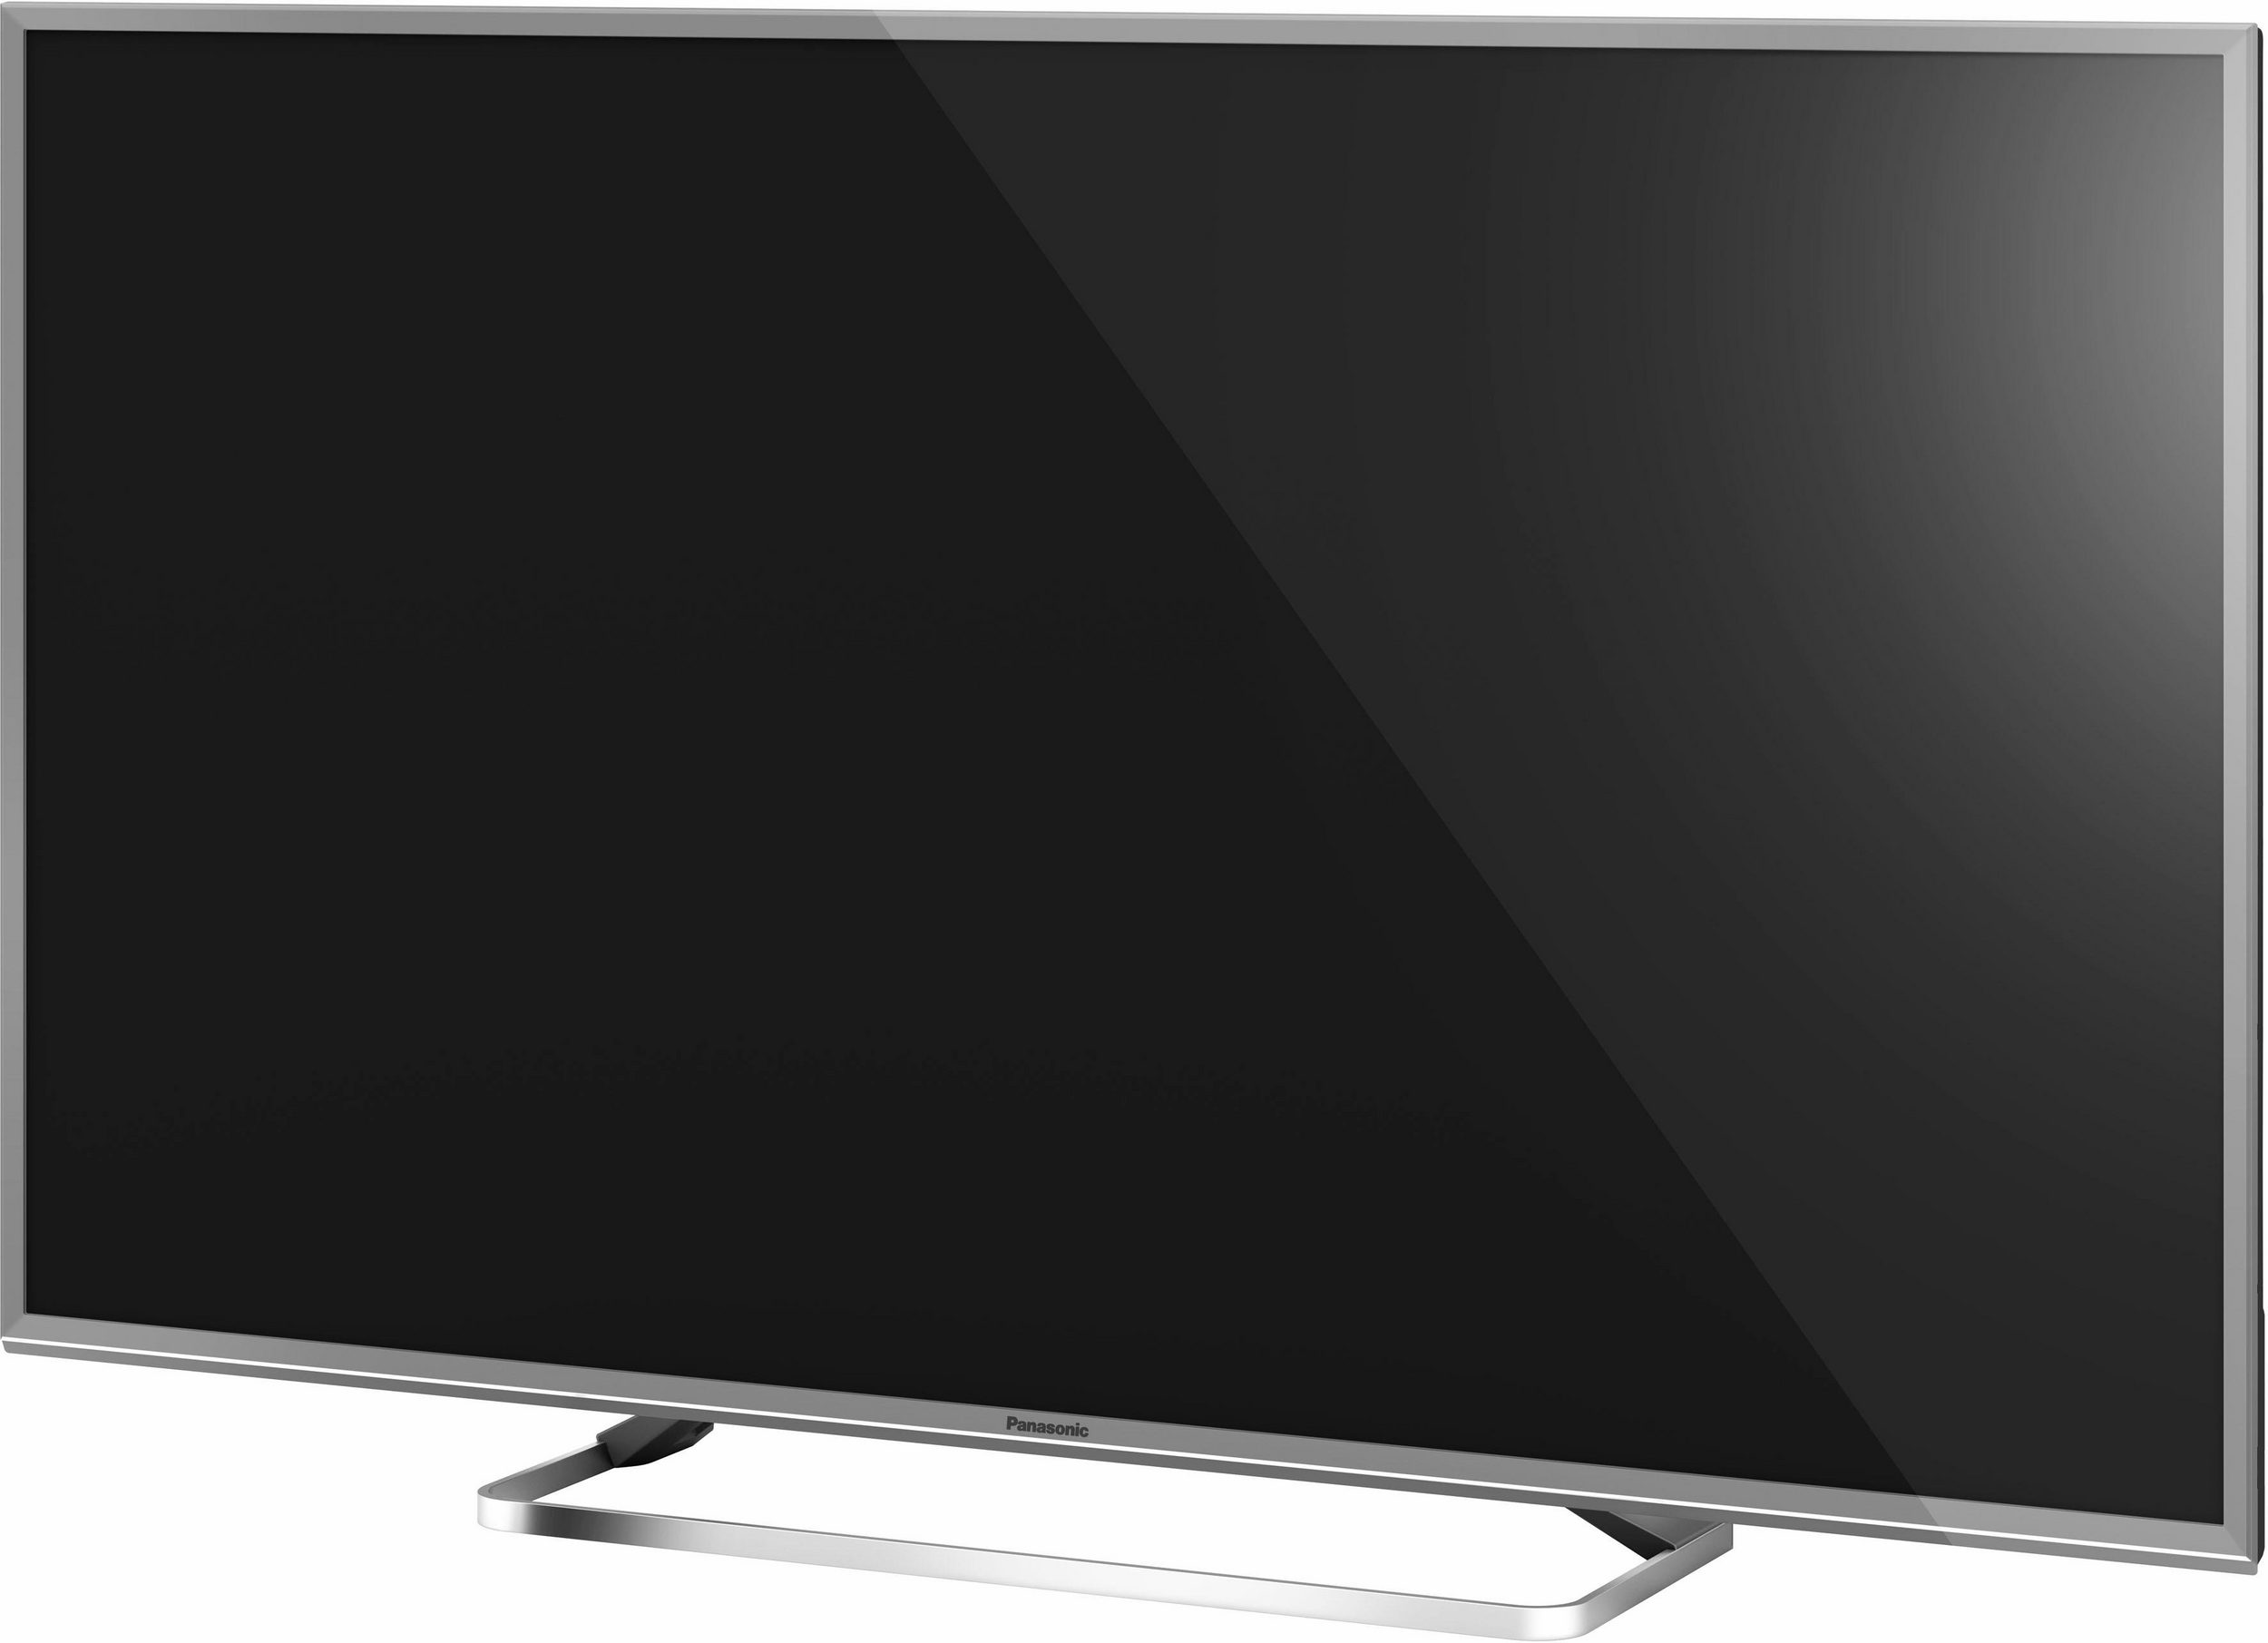 panasonic tx 49esw504s led tv 49 zoll eek a dvb t2. Black Bedroom Furniture Sets. Home Design Ideas